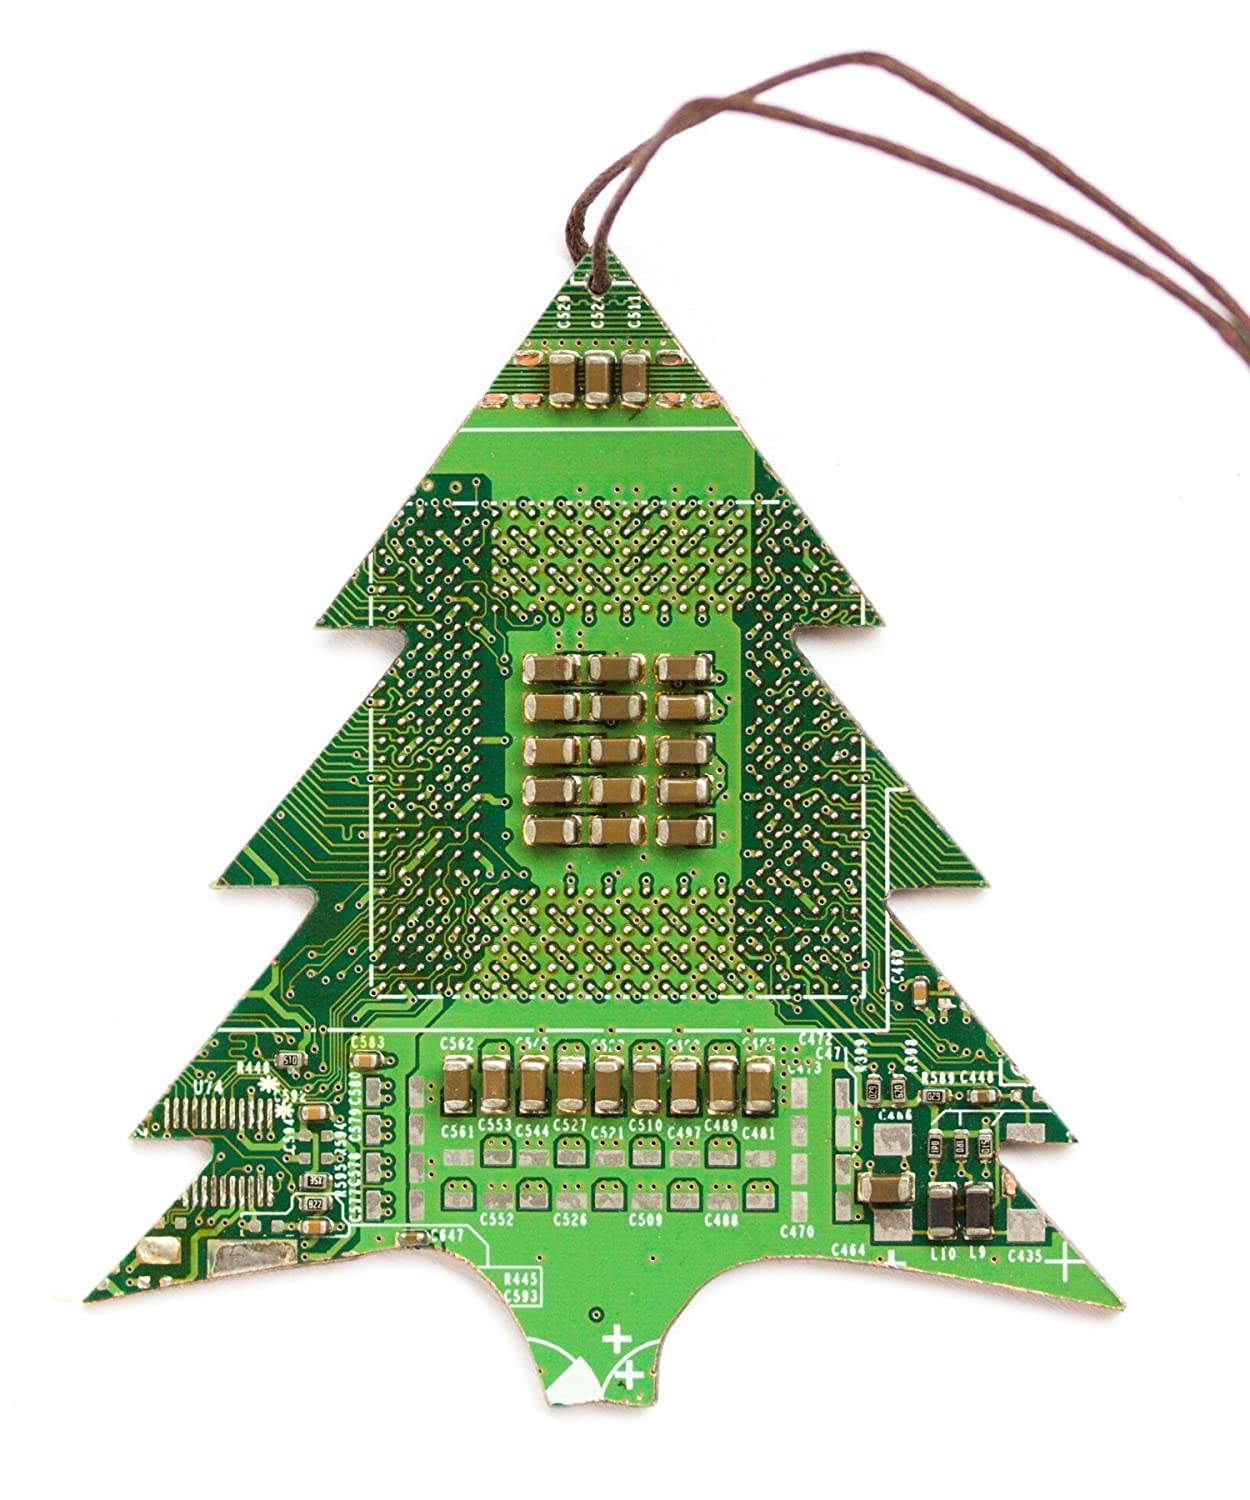 Amazon.com: Green Christmas Tree Ornament, recycled circuit board ...